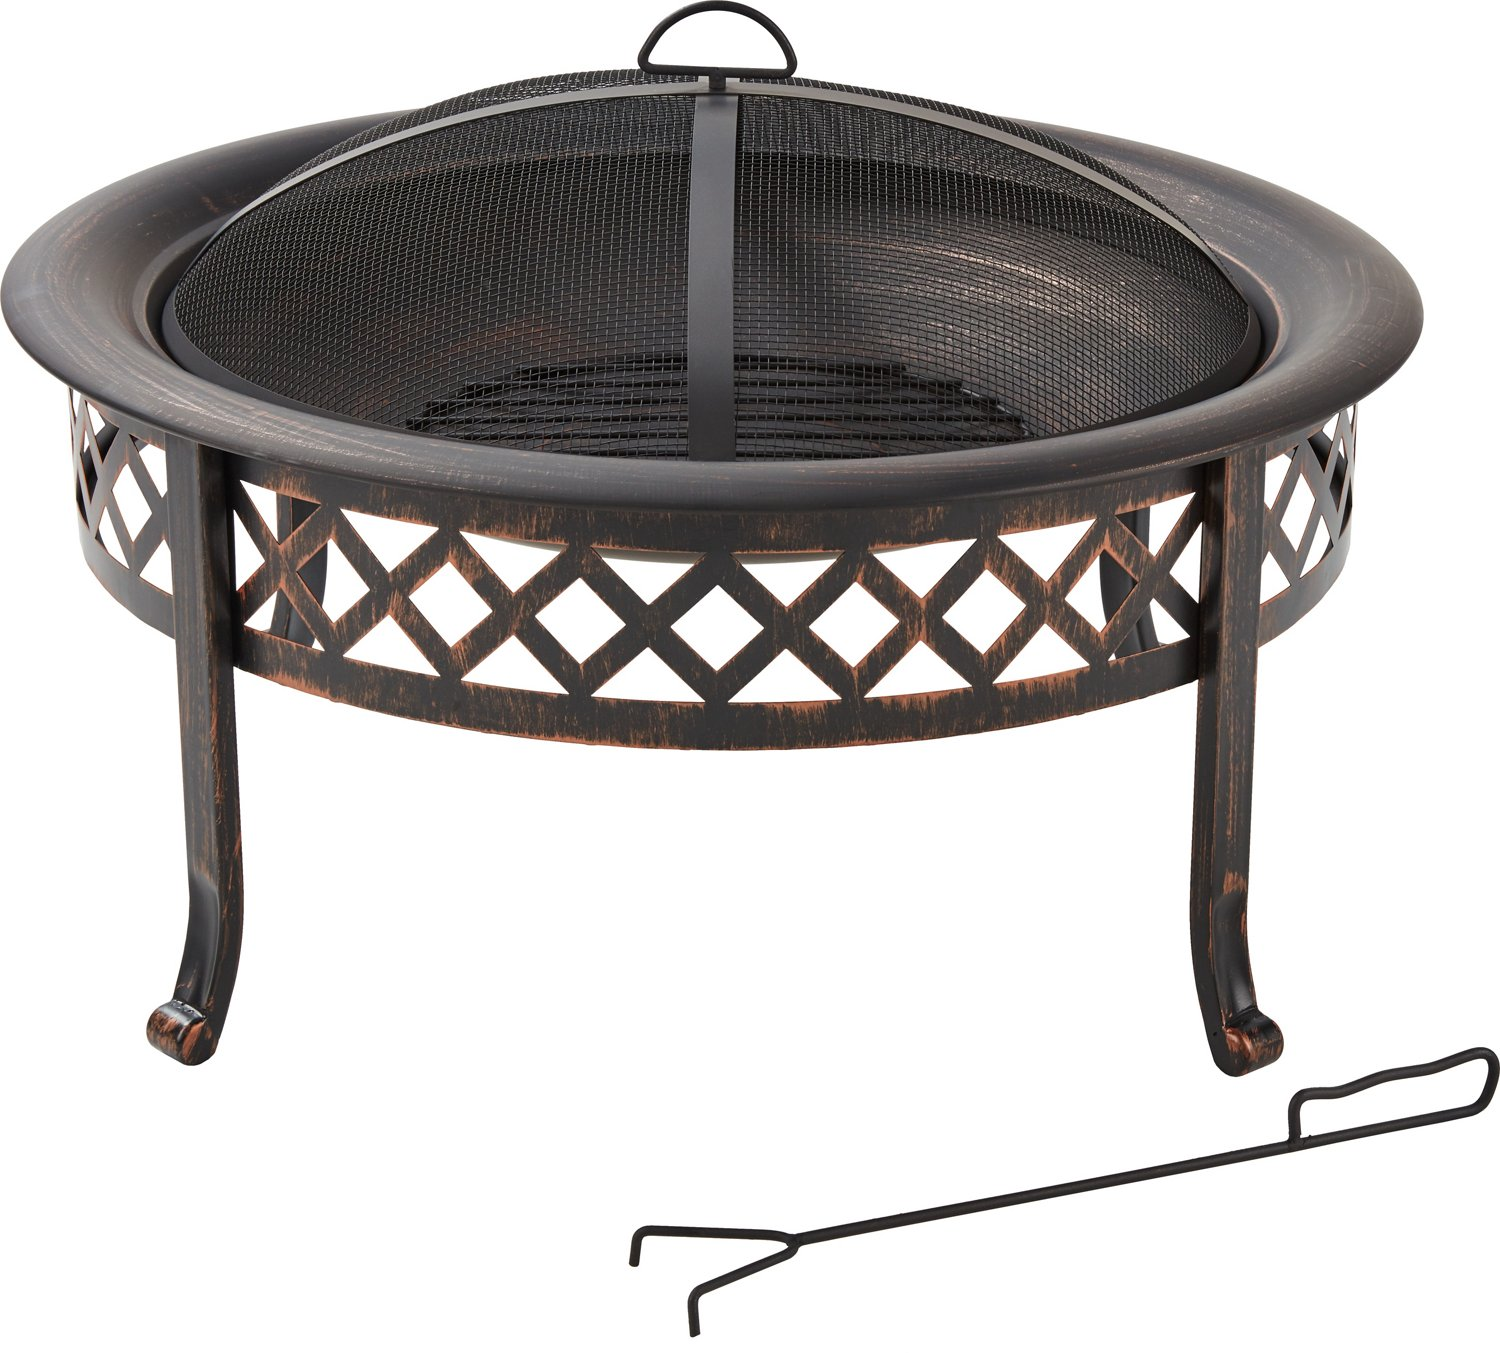 30 In Steel Lola Lattice Fire Pit